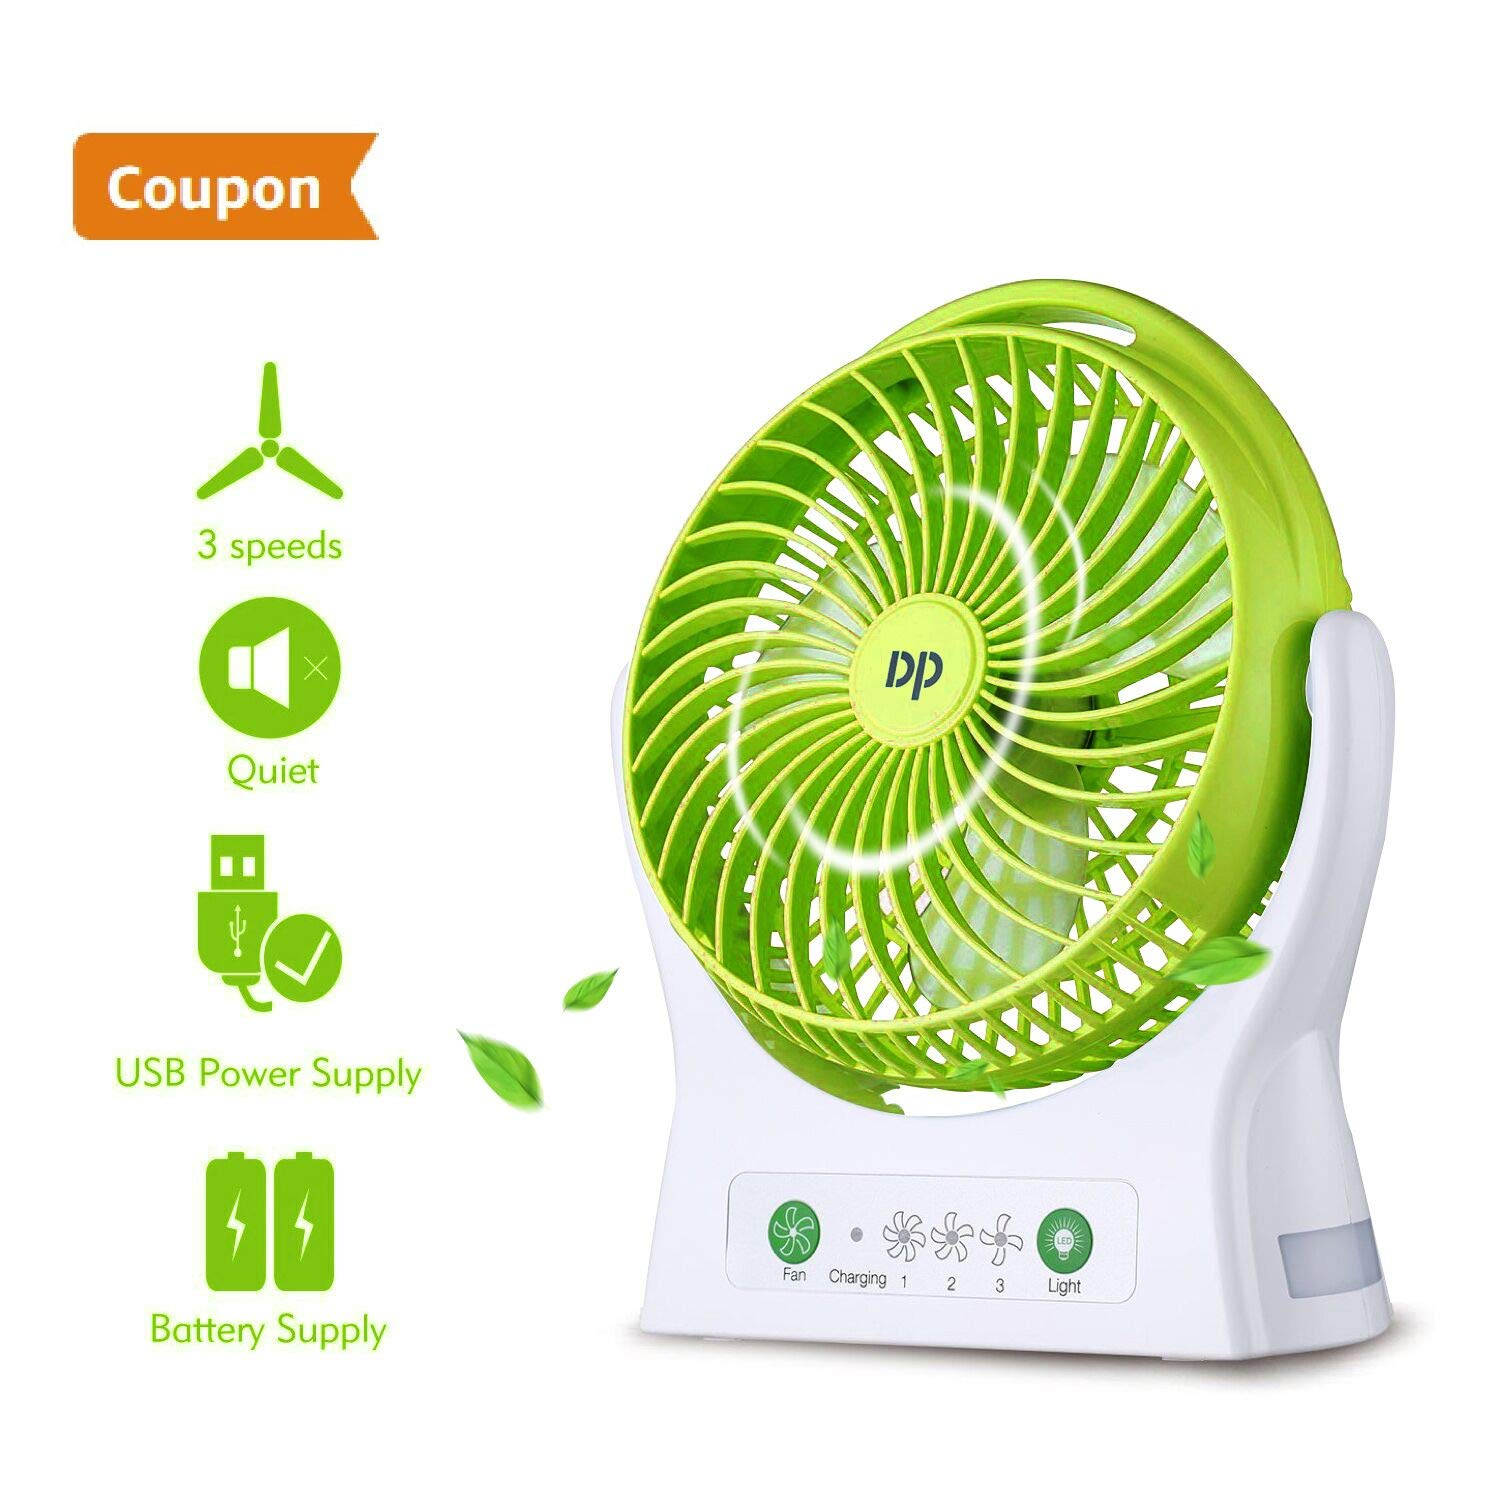 DurationPower Battery Operated Fan Rechargeable Fan Portable USB Powered Rechargeable Battery Operated Personal Desk Fan Strong Airflow Cooling Fan 3 Speeds Travel Home Kitchen Office Outdoor (Green)